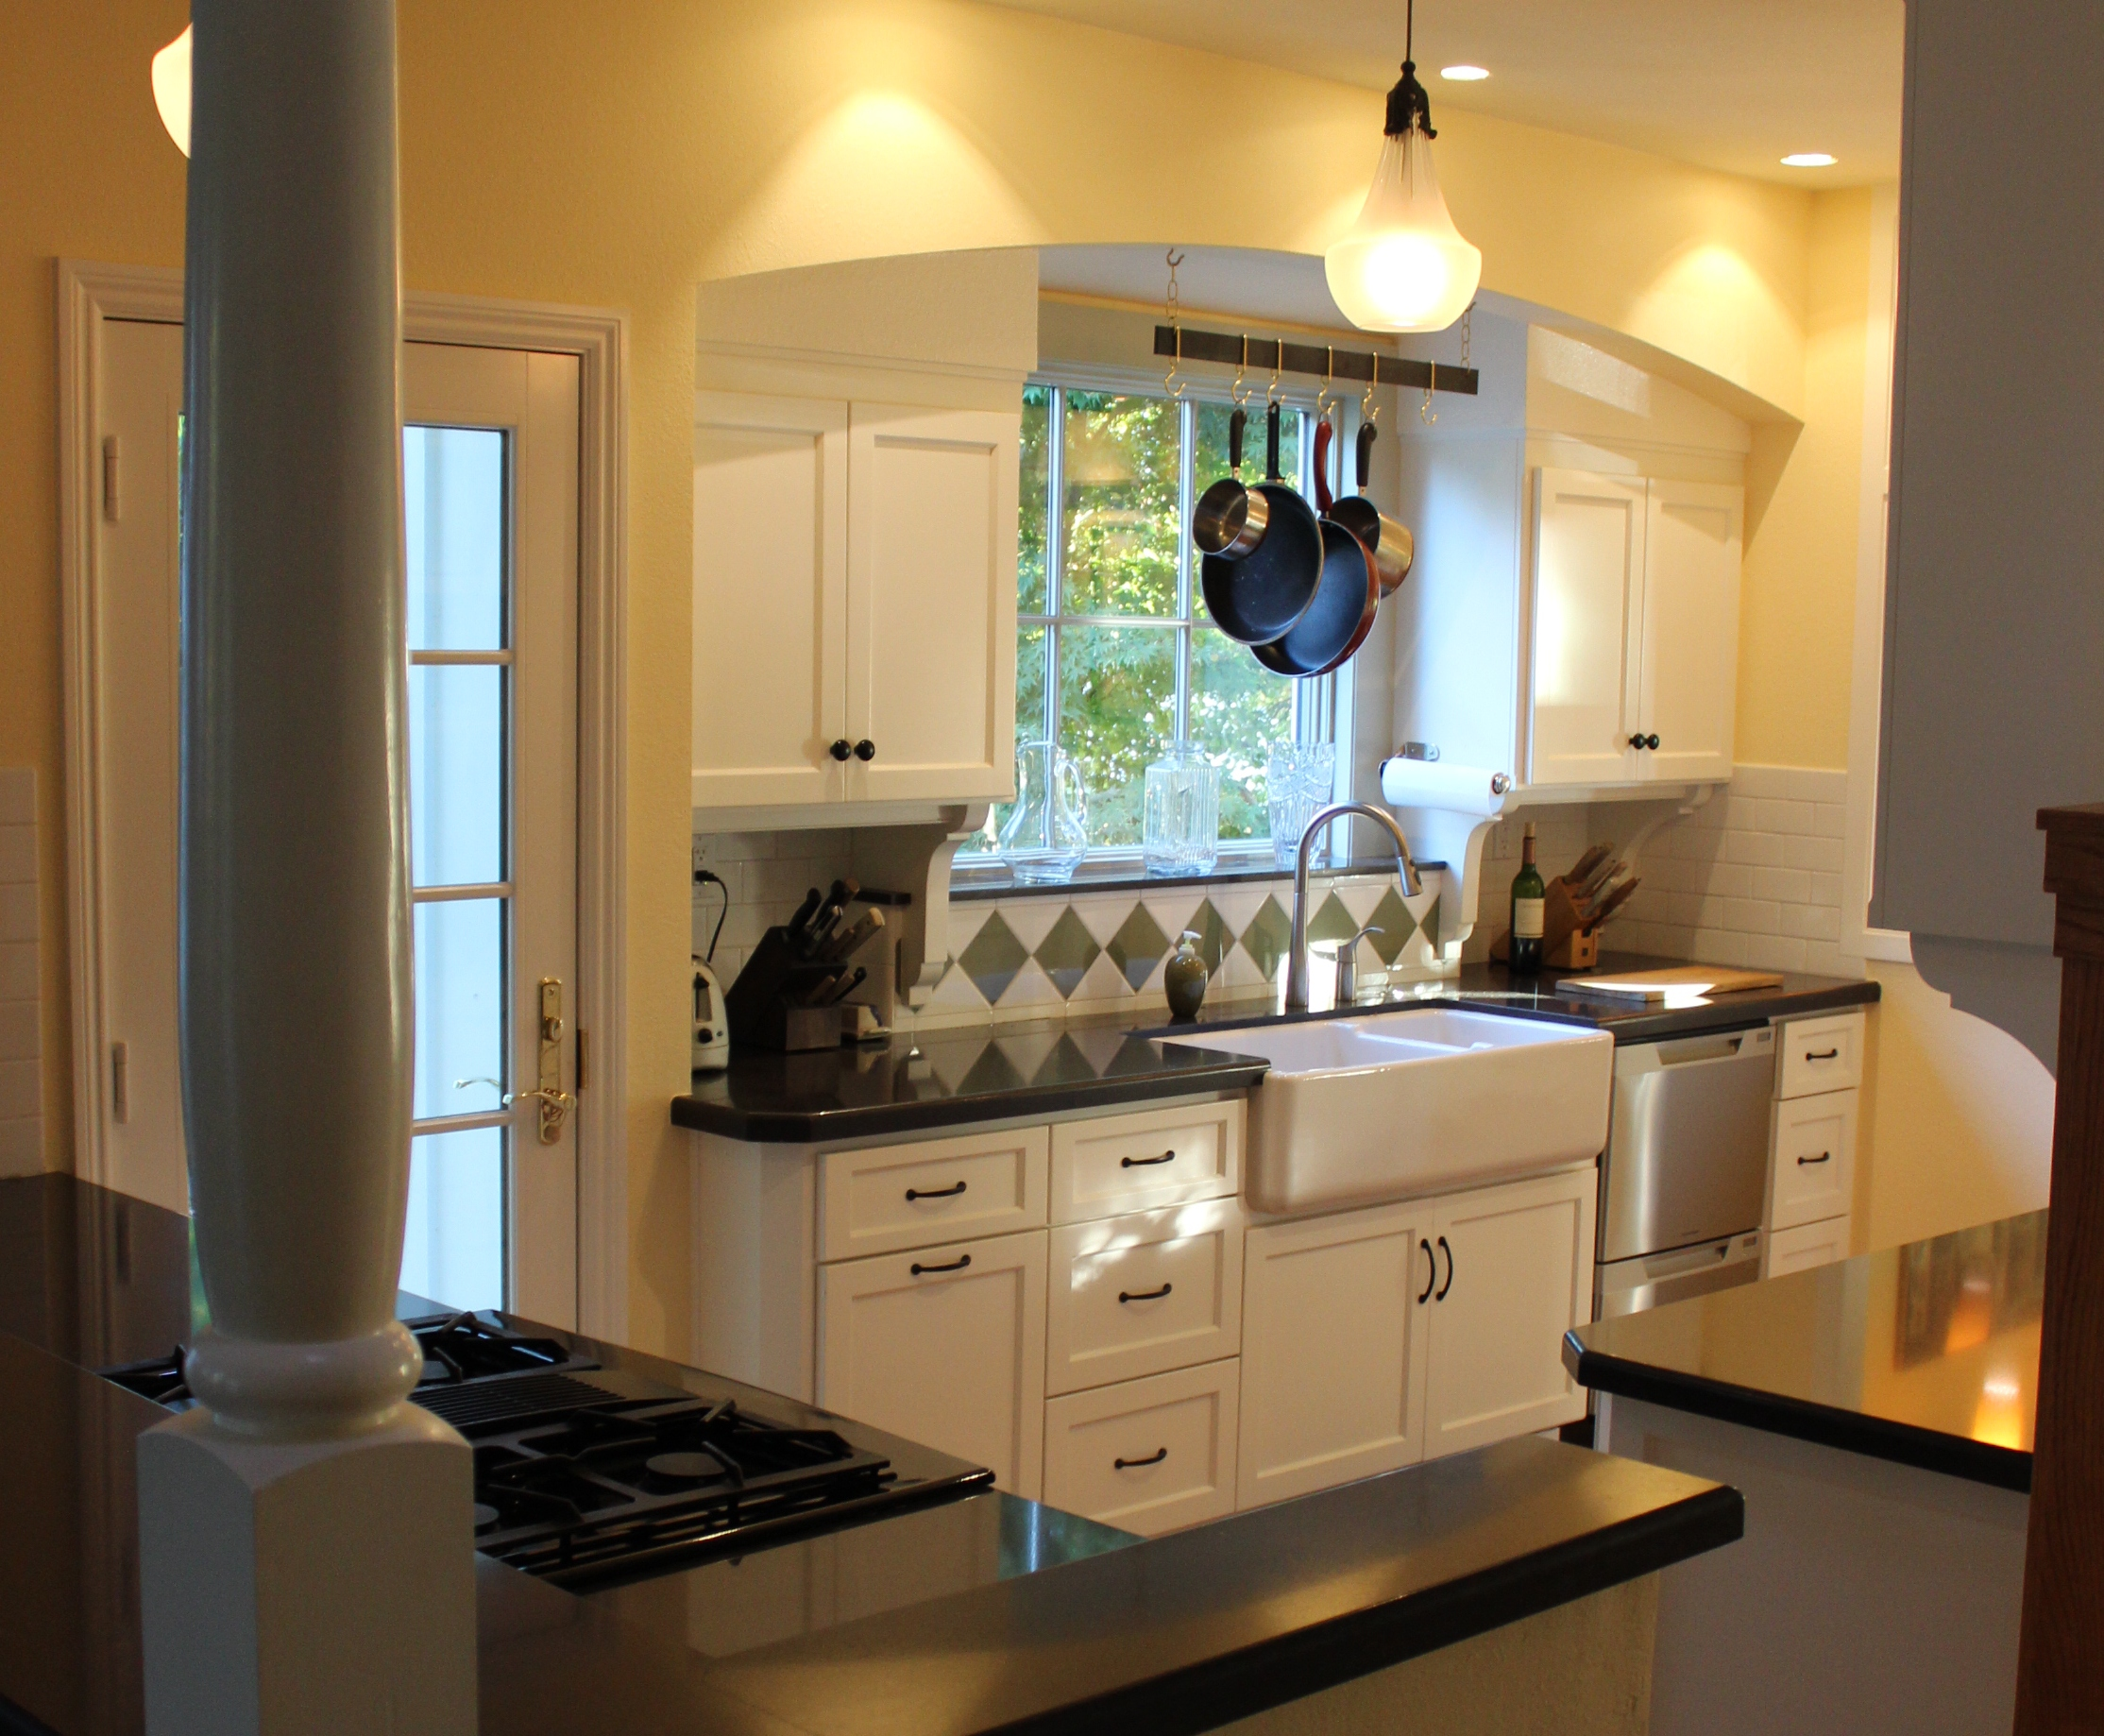 My kitchen remodel a year later steve mckee architalk How to redesign your kitchen